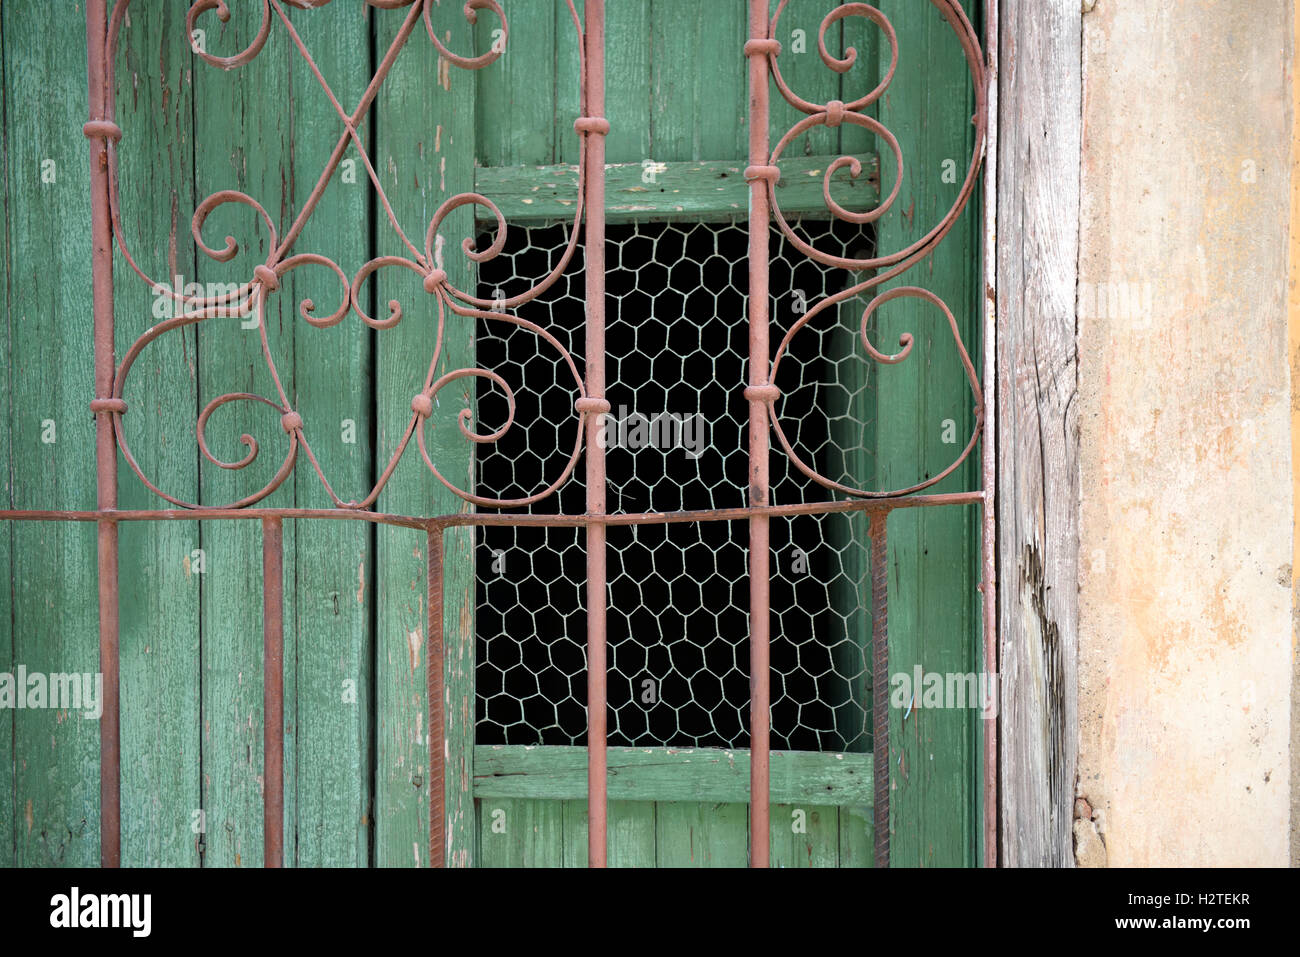 Heart Wrought Iron Gate Stockfotos & Heart Wrought Iron Gate Bilder ...